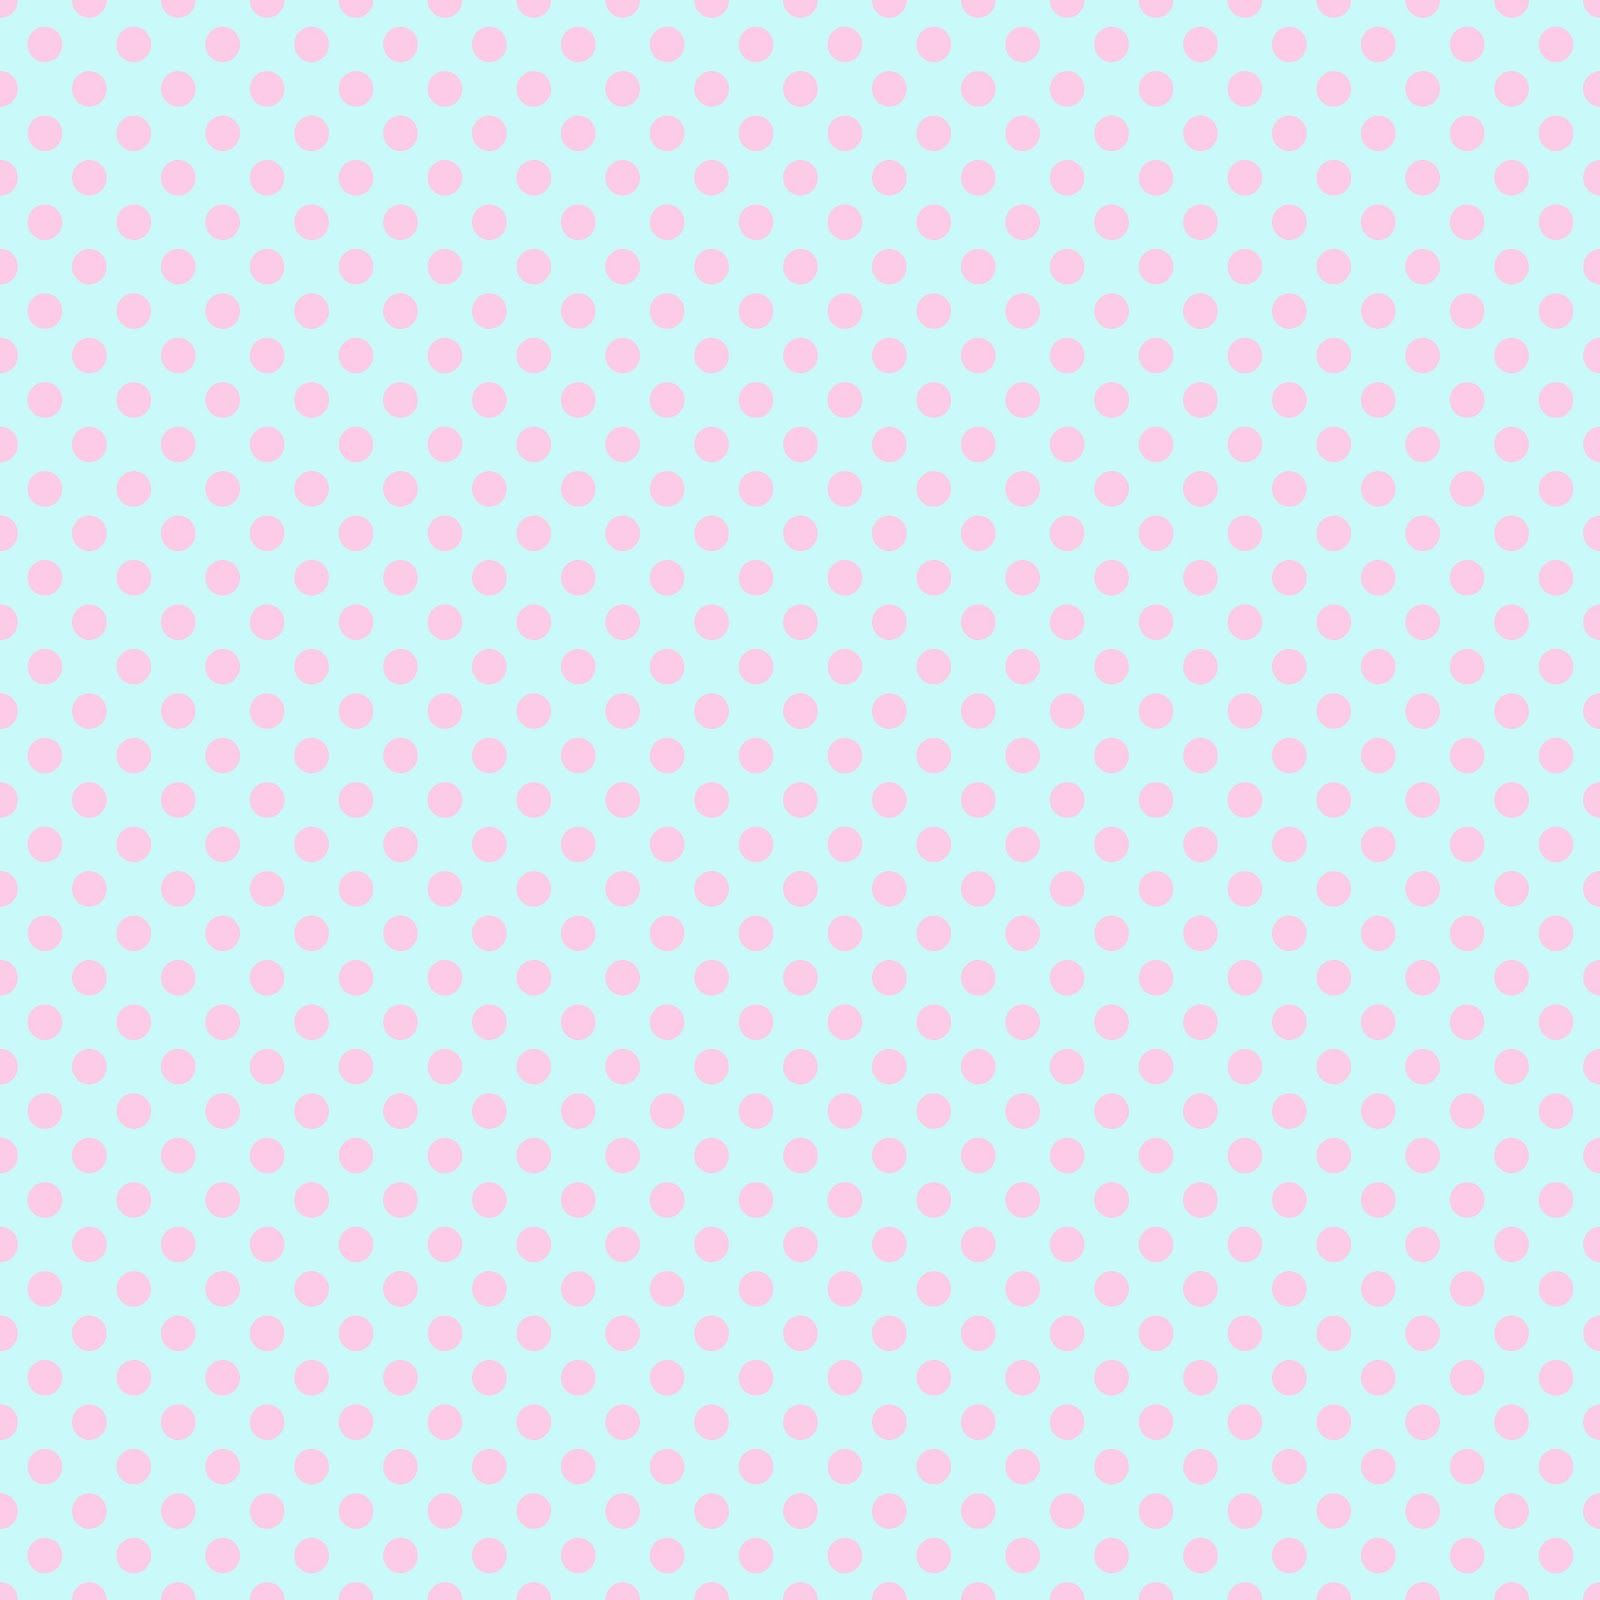 Pink Polka Dots On Aqua From Free Vintage Digital Stamps